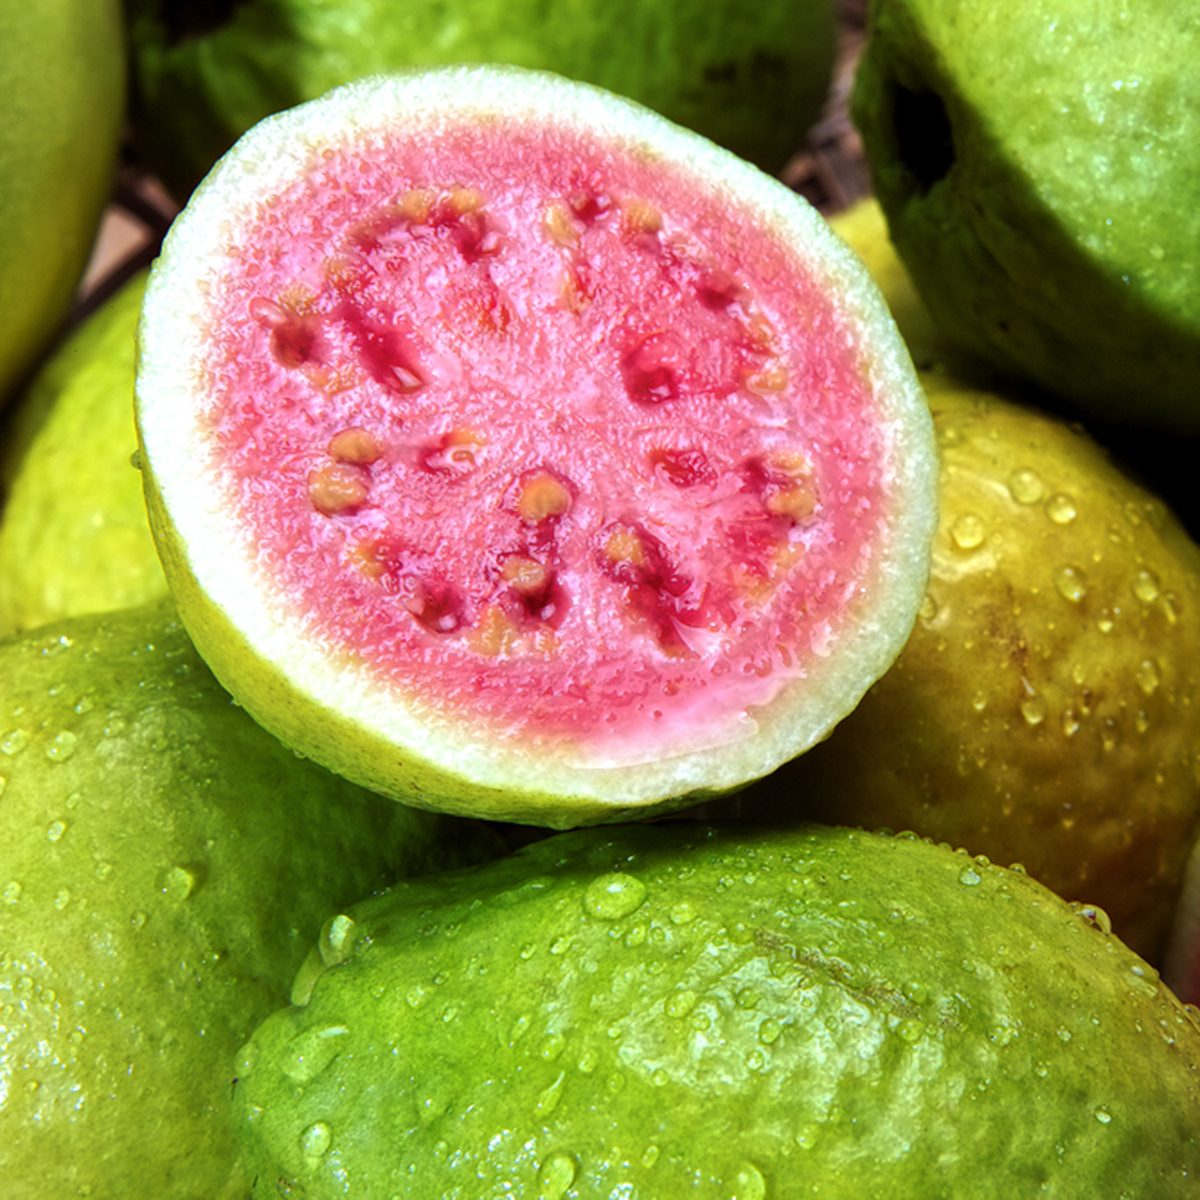 guavas with water droplets